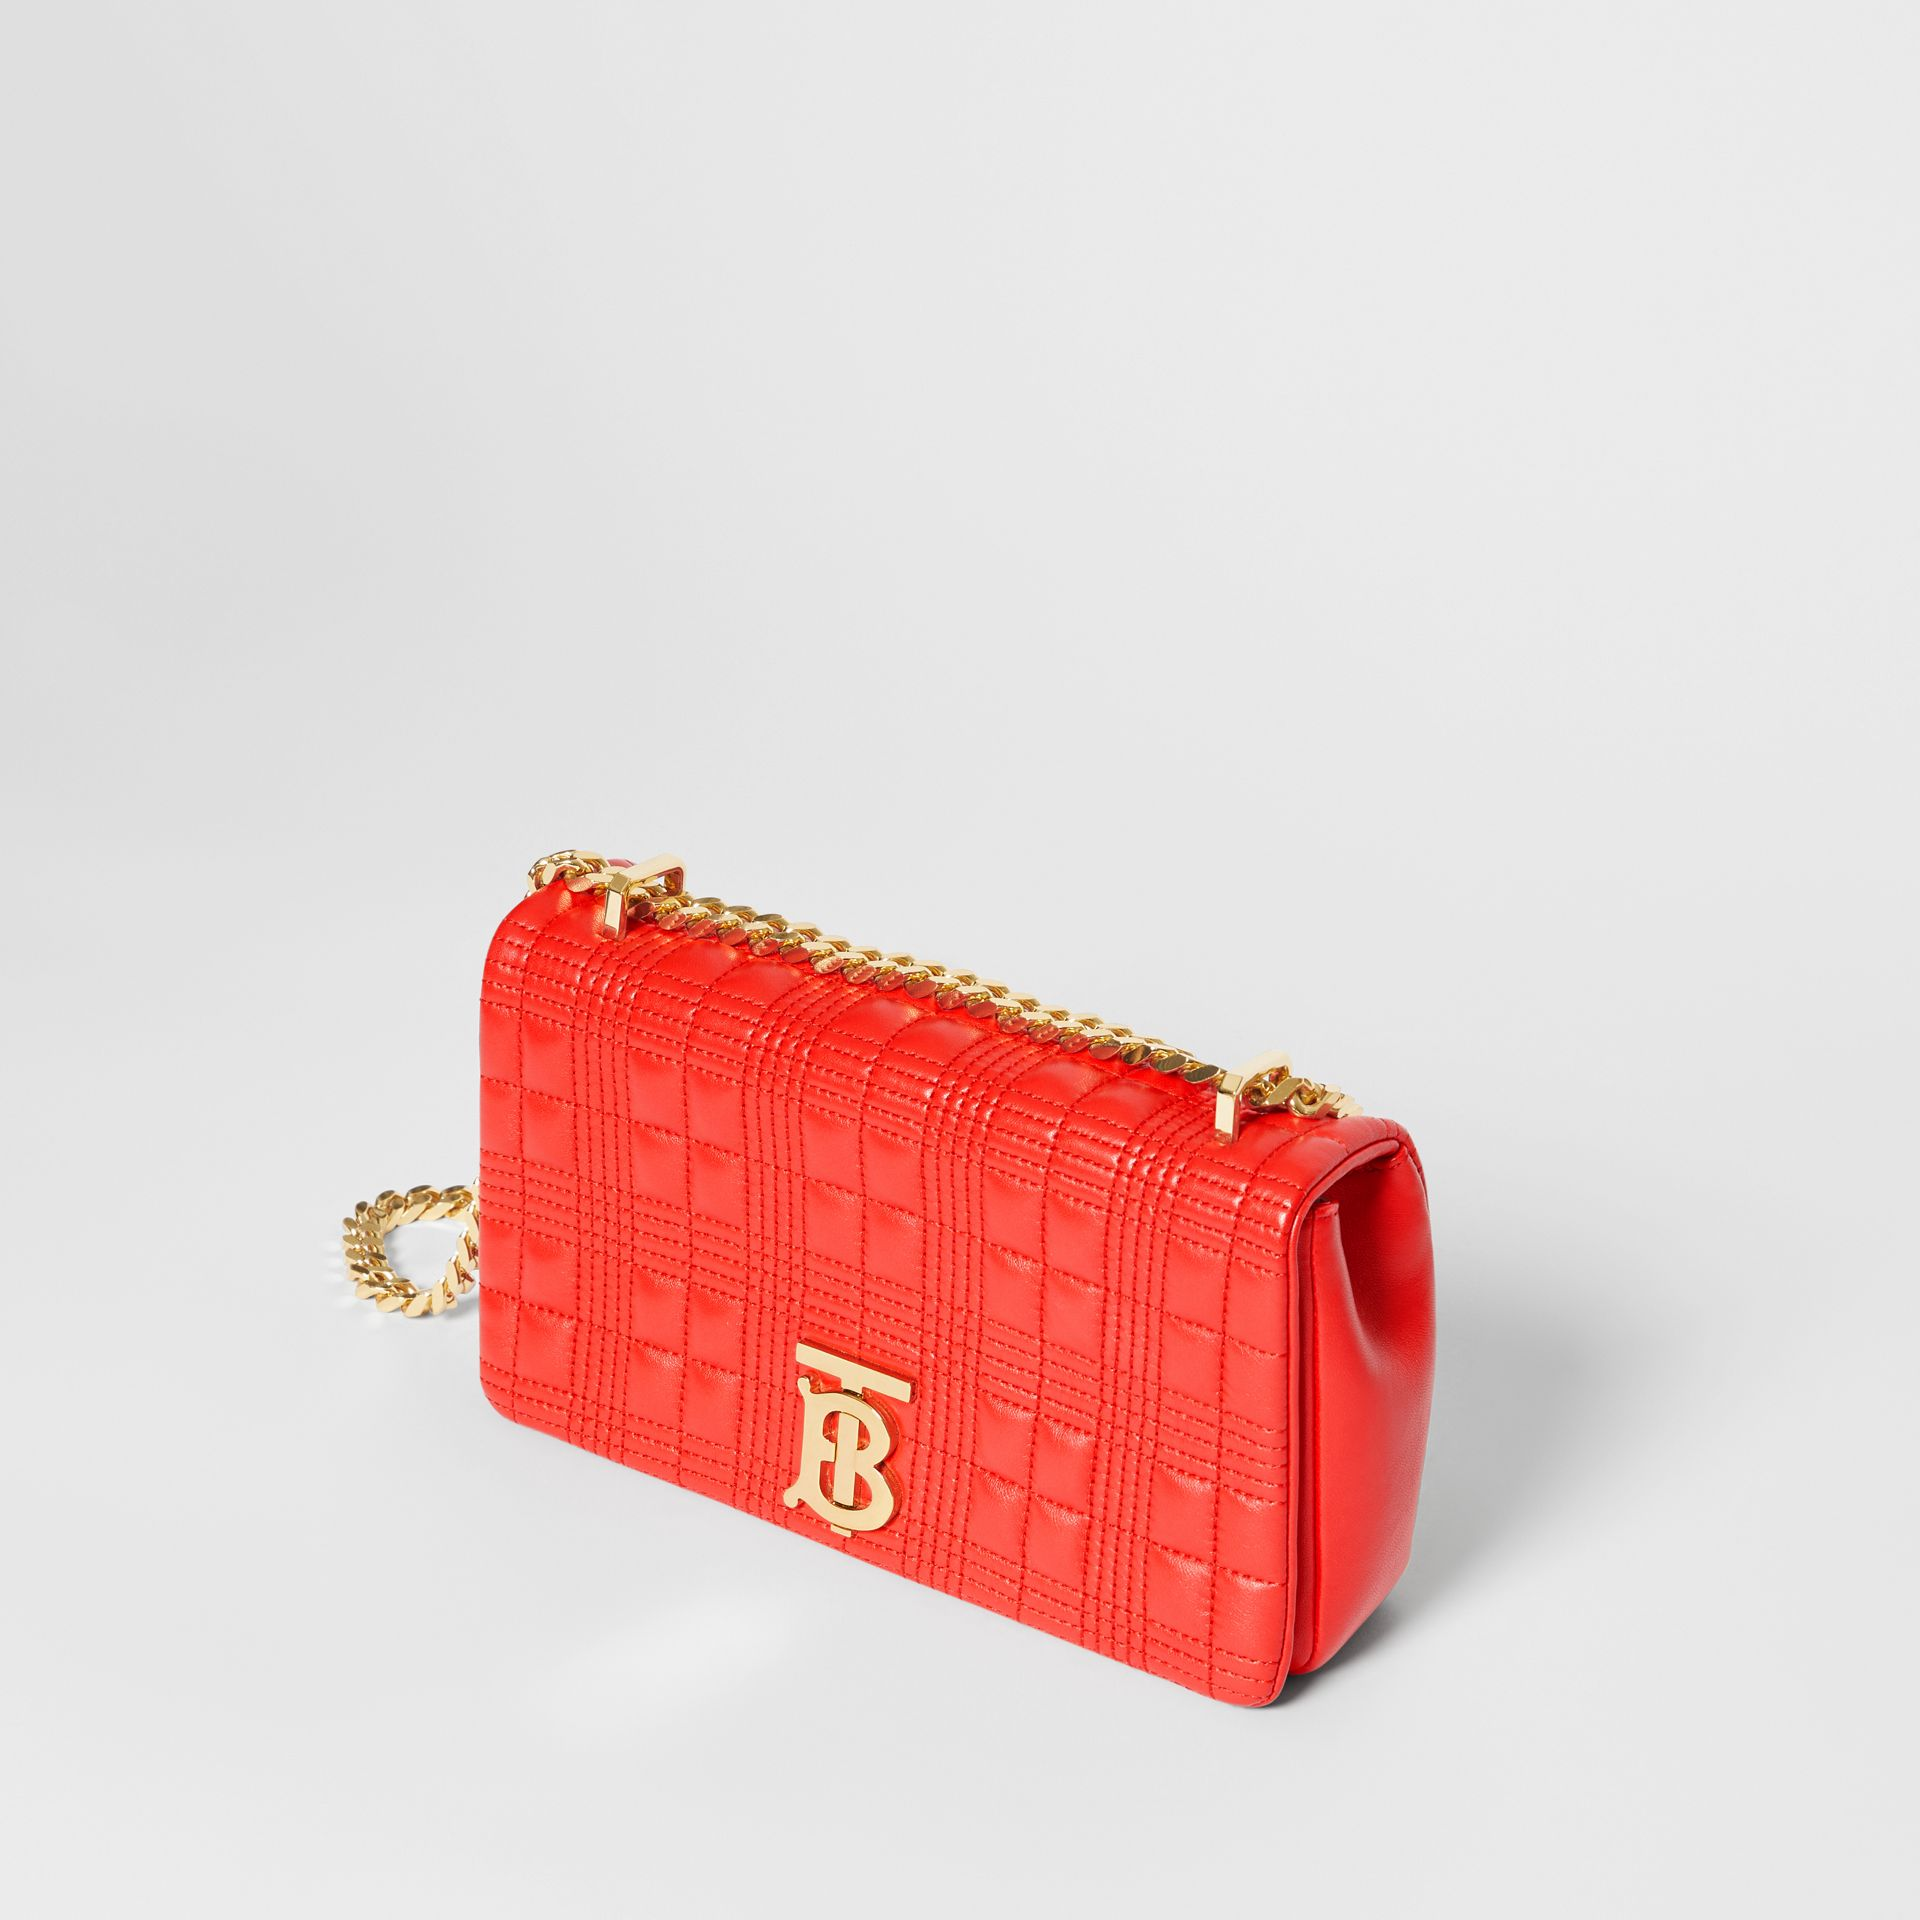 Small Quilted Lambskin Lola Bag in Bright Red - Women | Burberry - gallery image 3